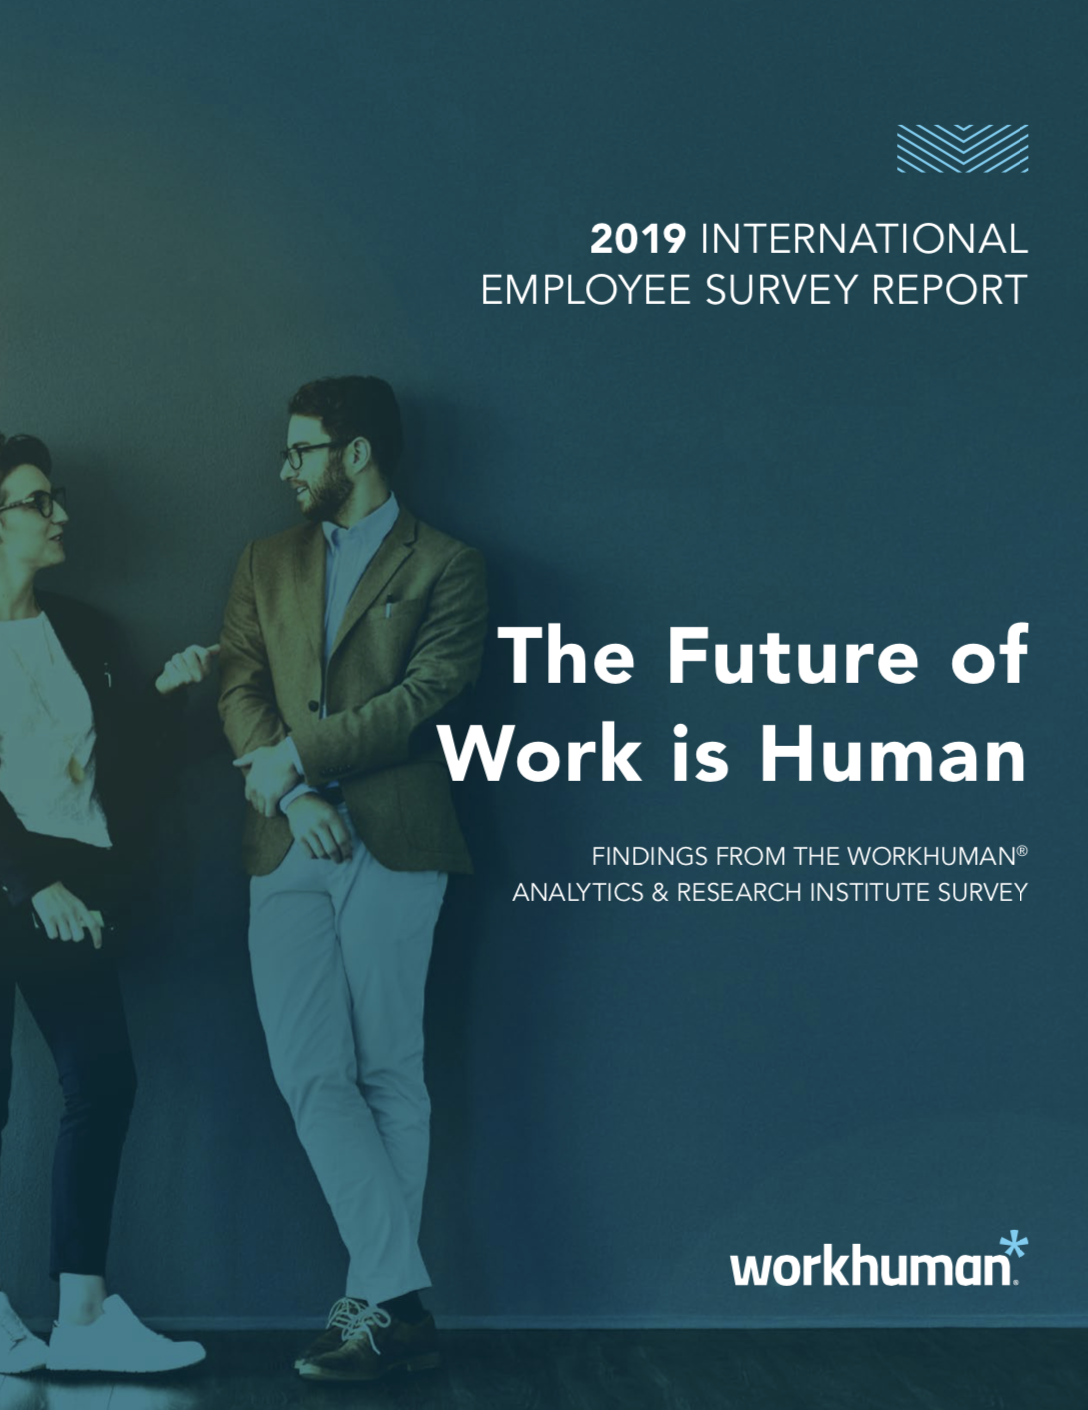 2019 International Employee Survey Report